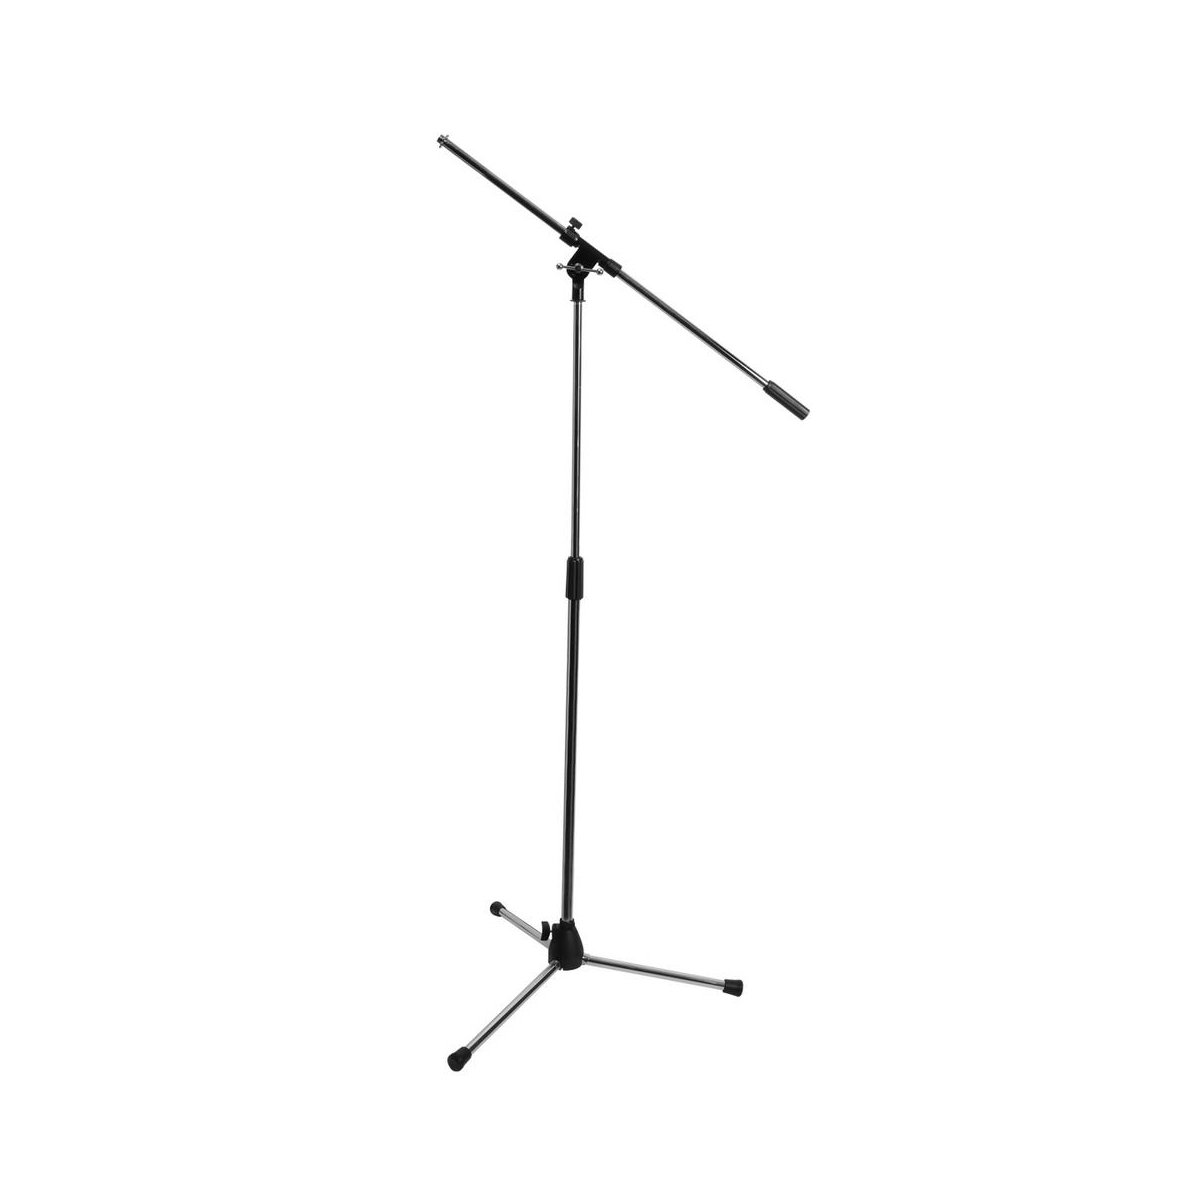 Redshifter's Gadget Reviews: On Stage MS7701C Tripod Microphone Boom Stand, Chrome